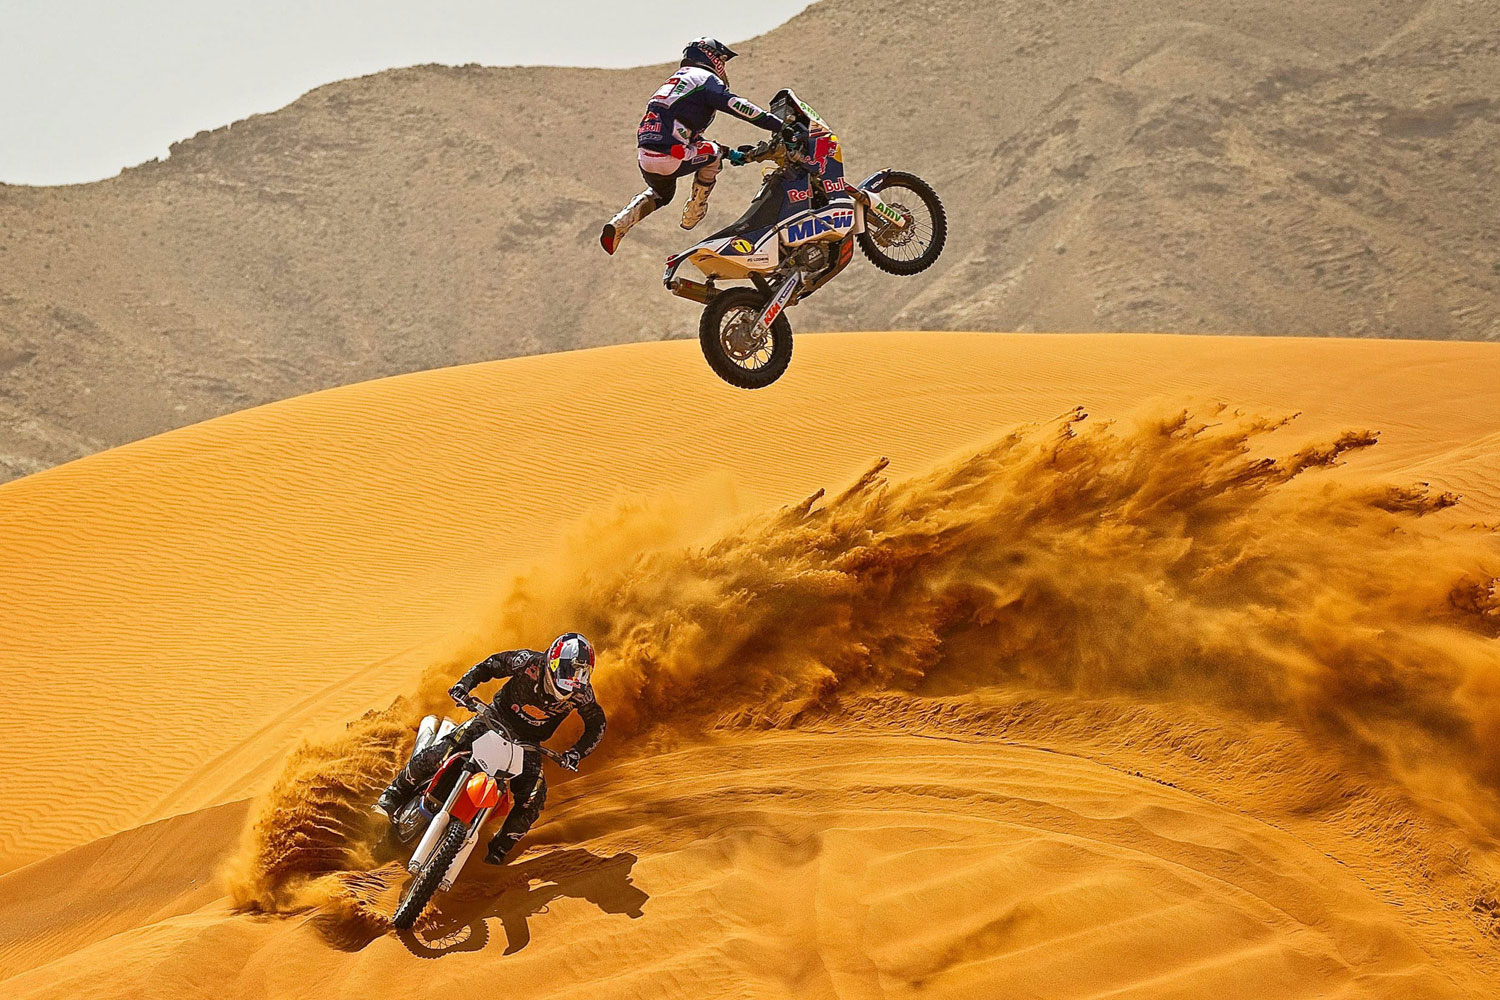 April 13, 2011. Spanish KTM-rider Marc Coma, three-time winner of the Rallye Paris-Dakar, jumping over U.S. Ronnie Renner, winner of the freestyle motocross at the X-Games in the desert close to Dubai in the United Arab Emirates.